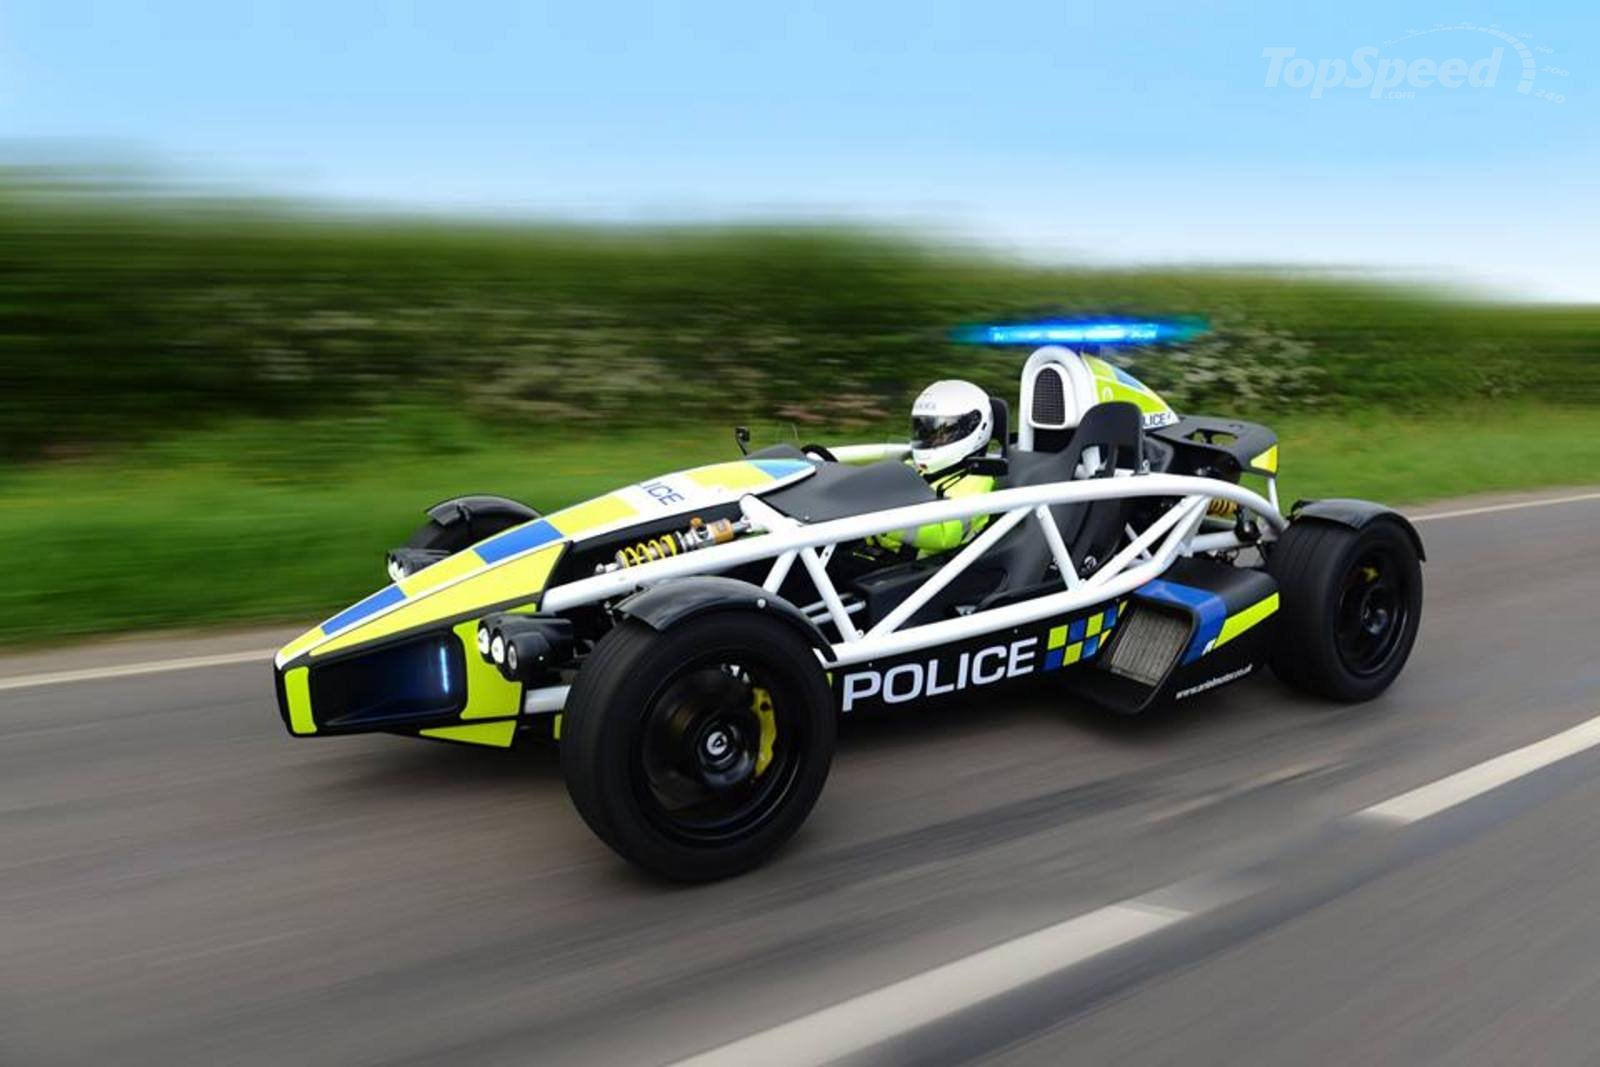 Ariel Cars Models Prices Reviews And News Top Speed Greenlight Series Premium 2014 Atom Police Car